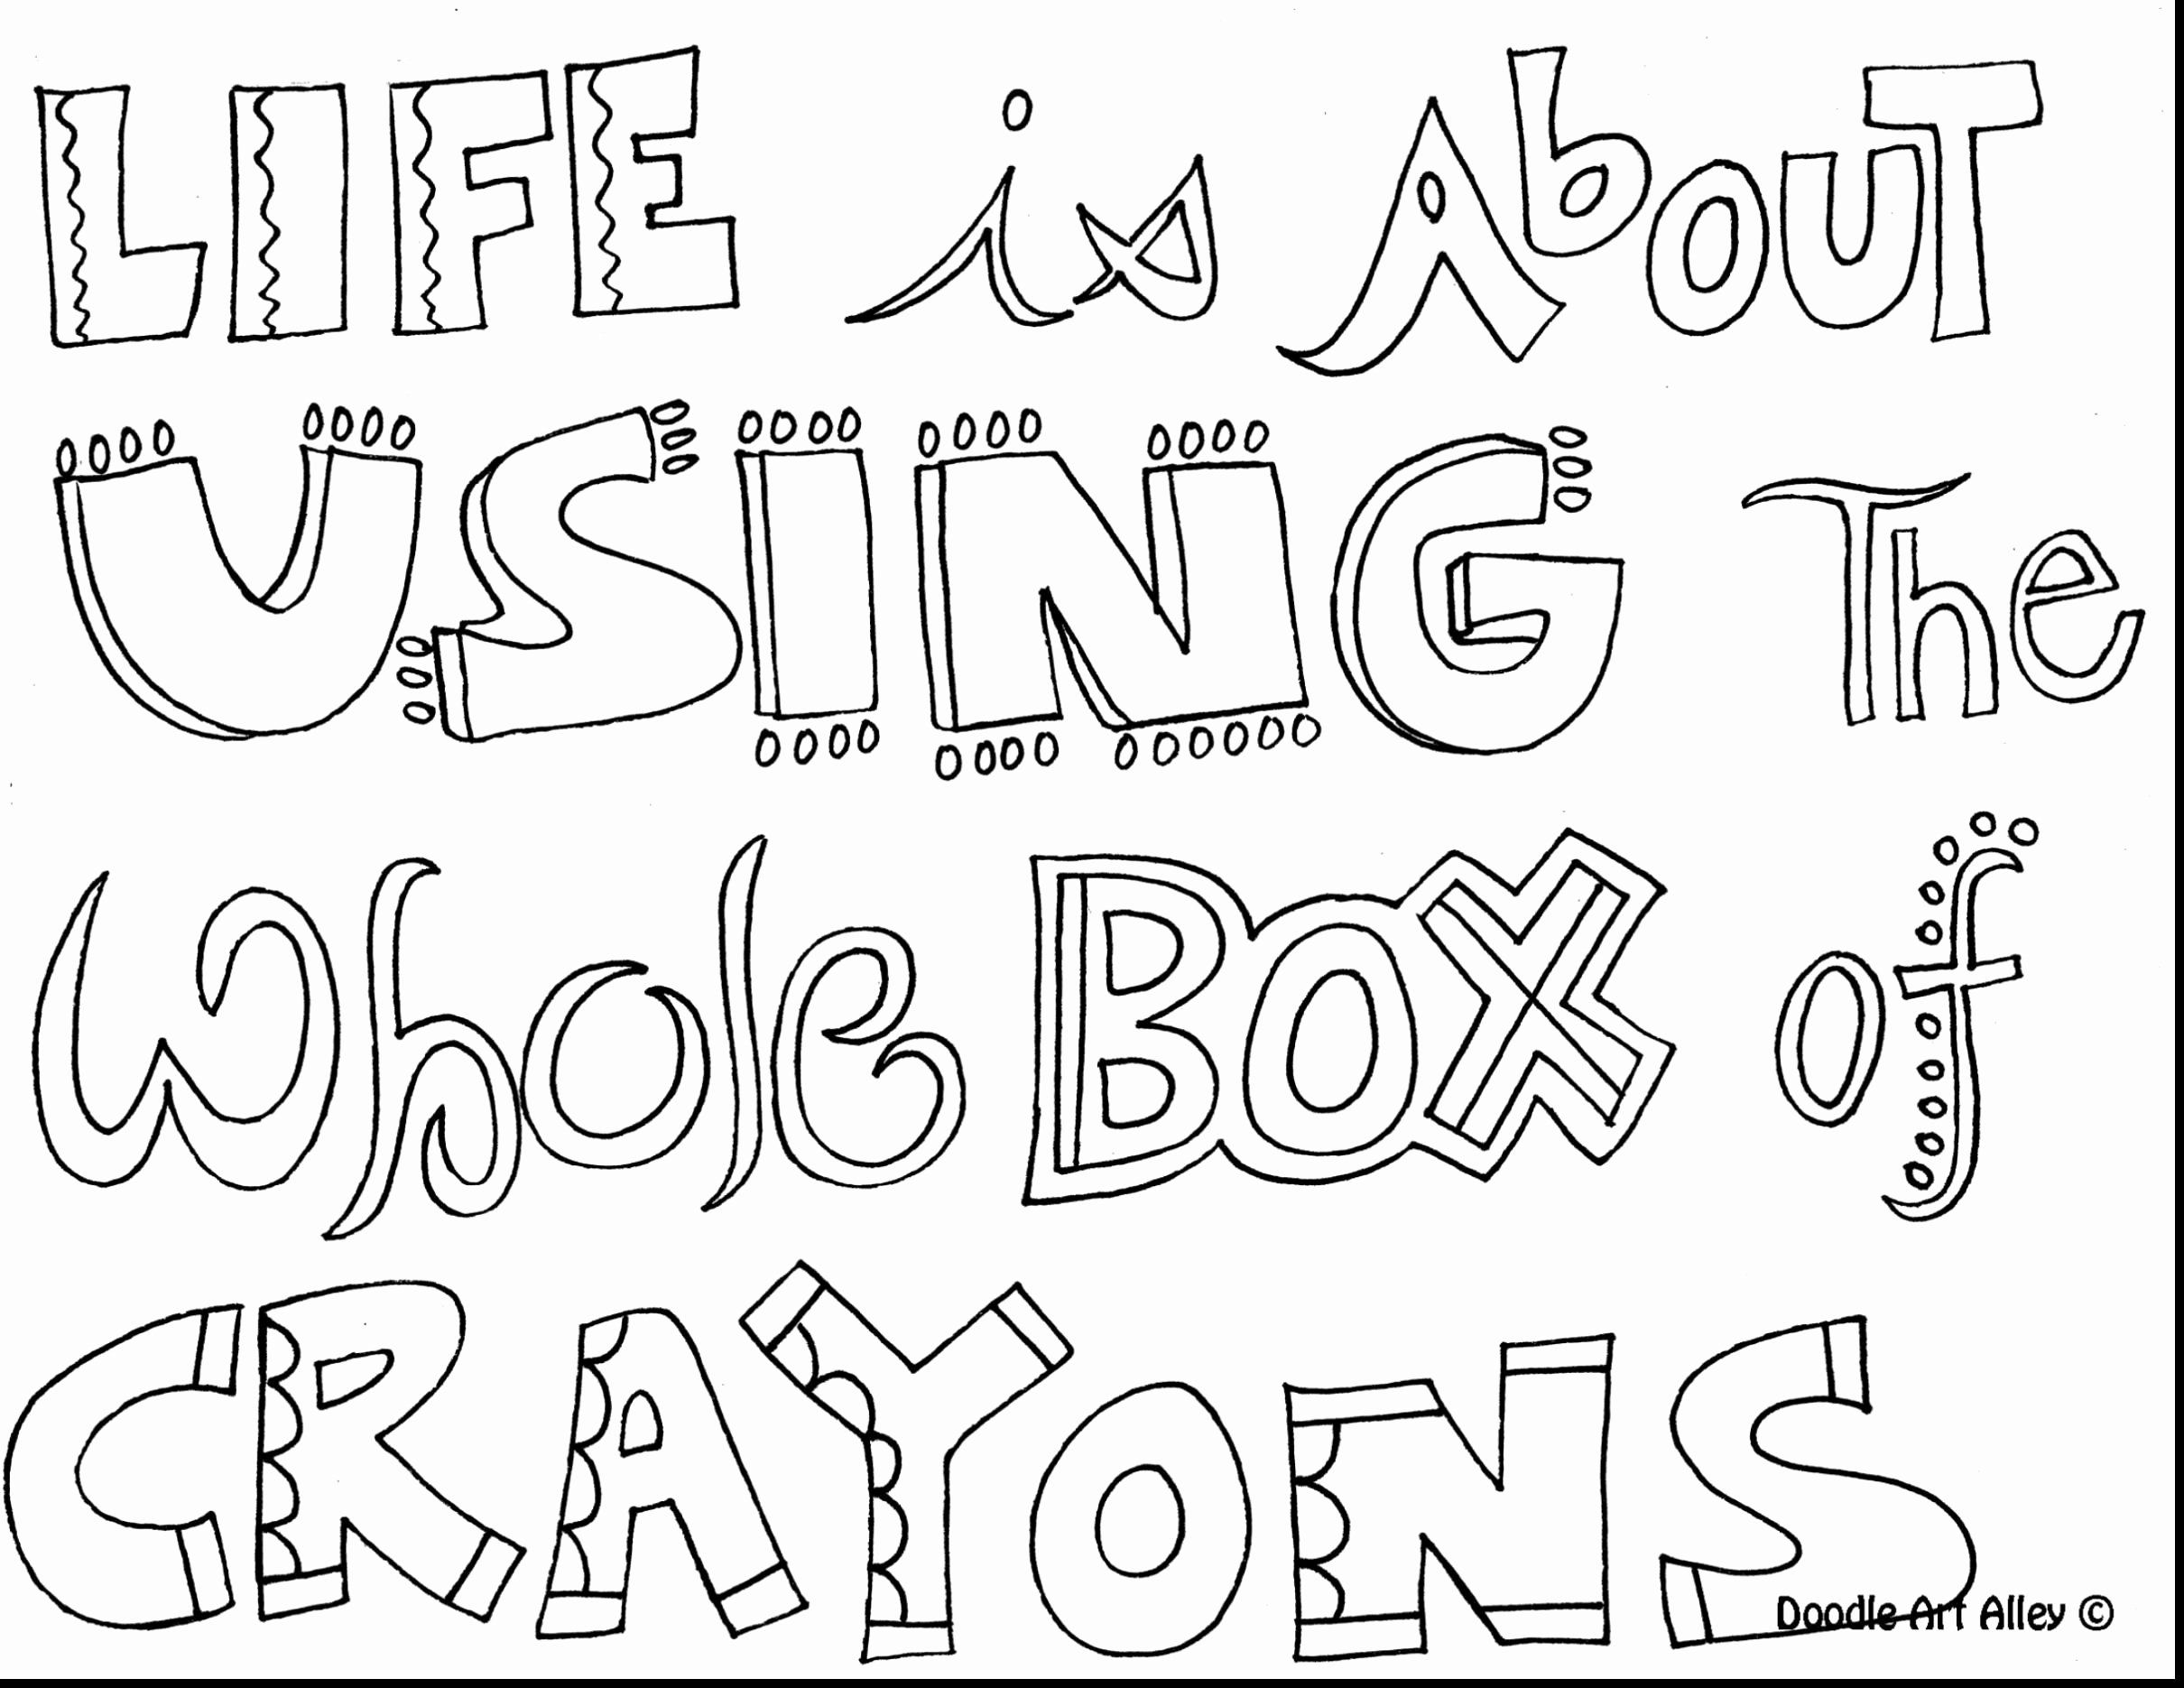 Dr Seuss Coloring Pages For Kids Beautiful 21 Inspirational Quote Coloring Page In 2020 Inspirational Quotes Coloring Quote Coloring Pages Coloring Pages Inspirational